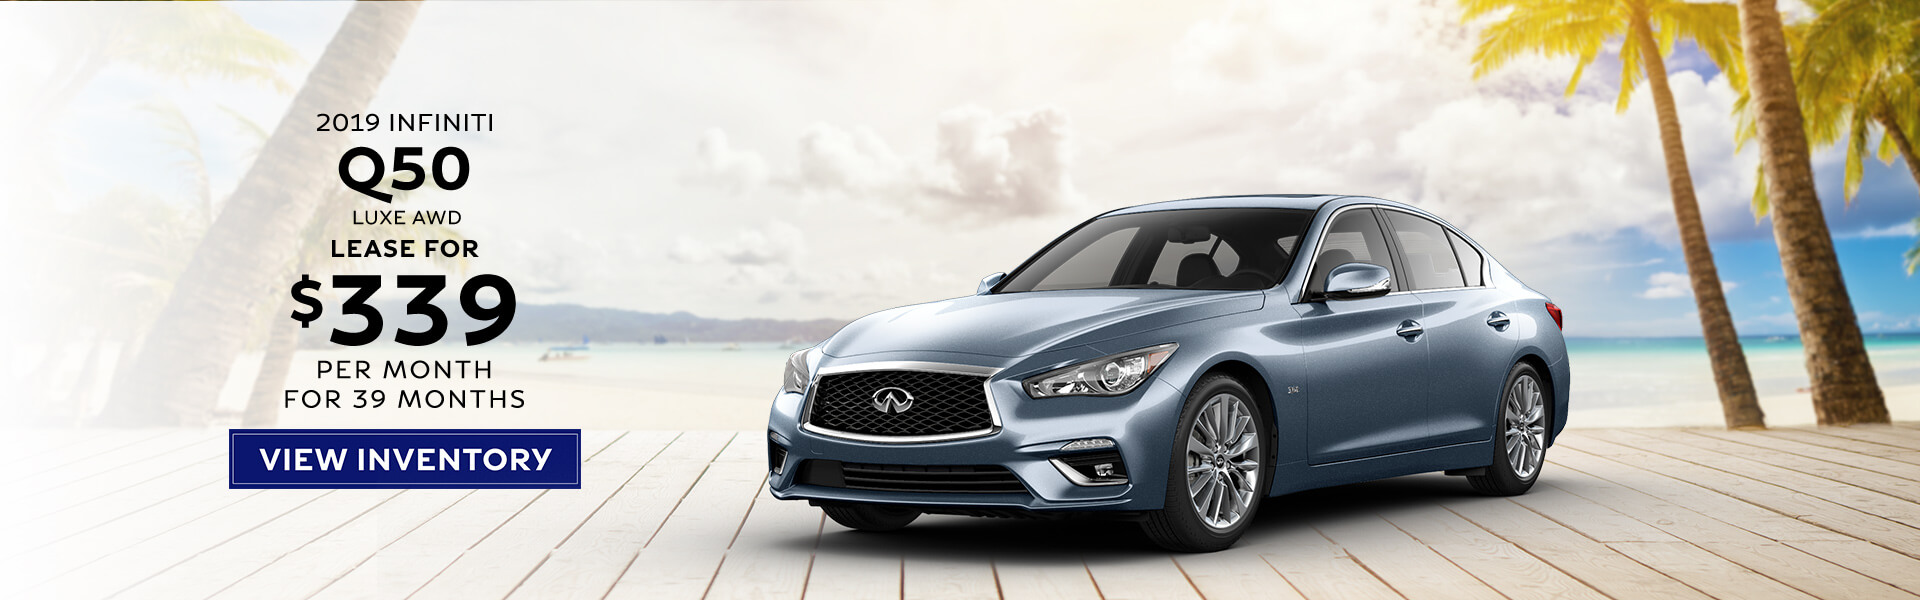 2019 Q50 - Lease for $339